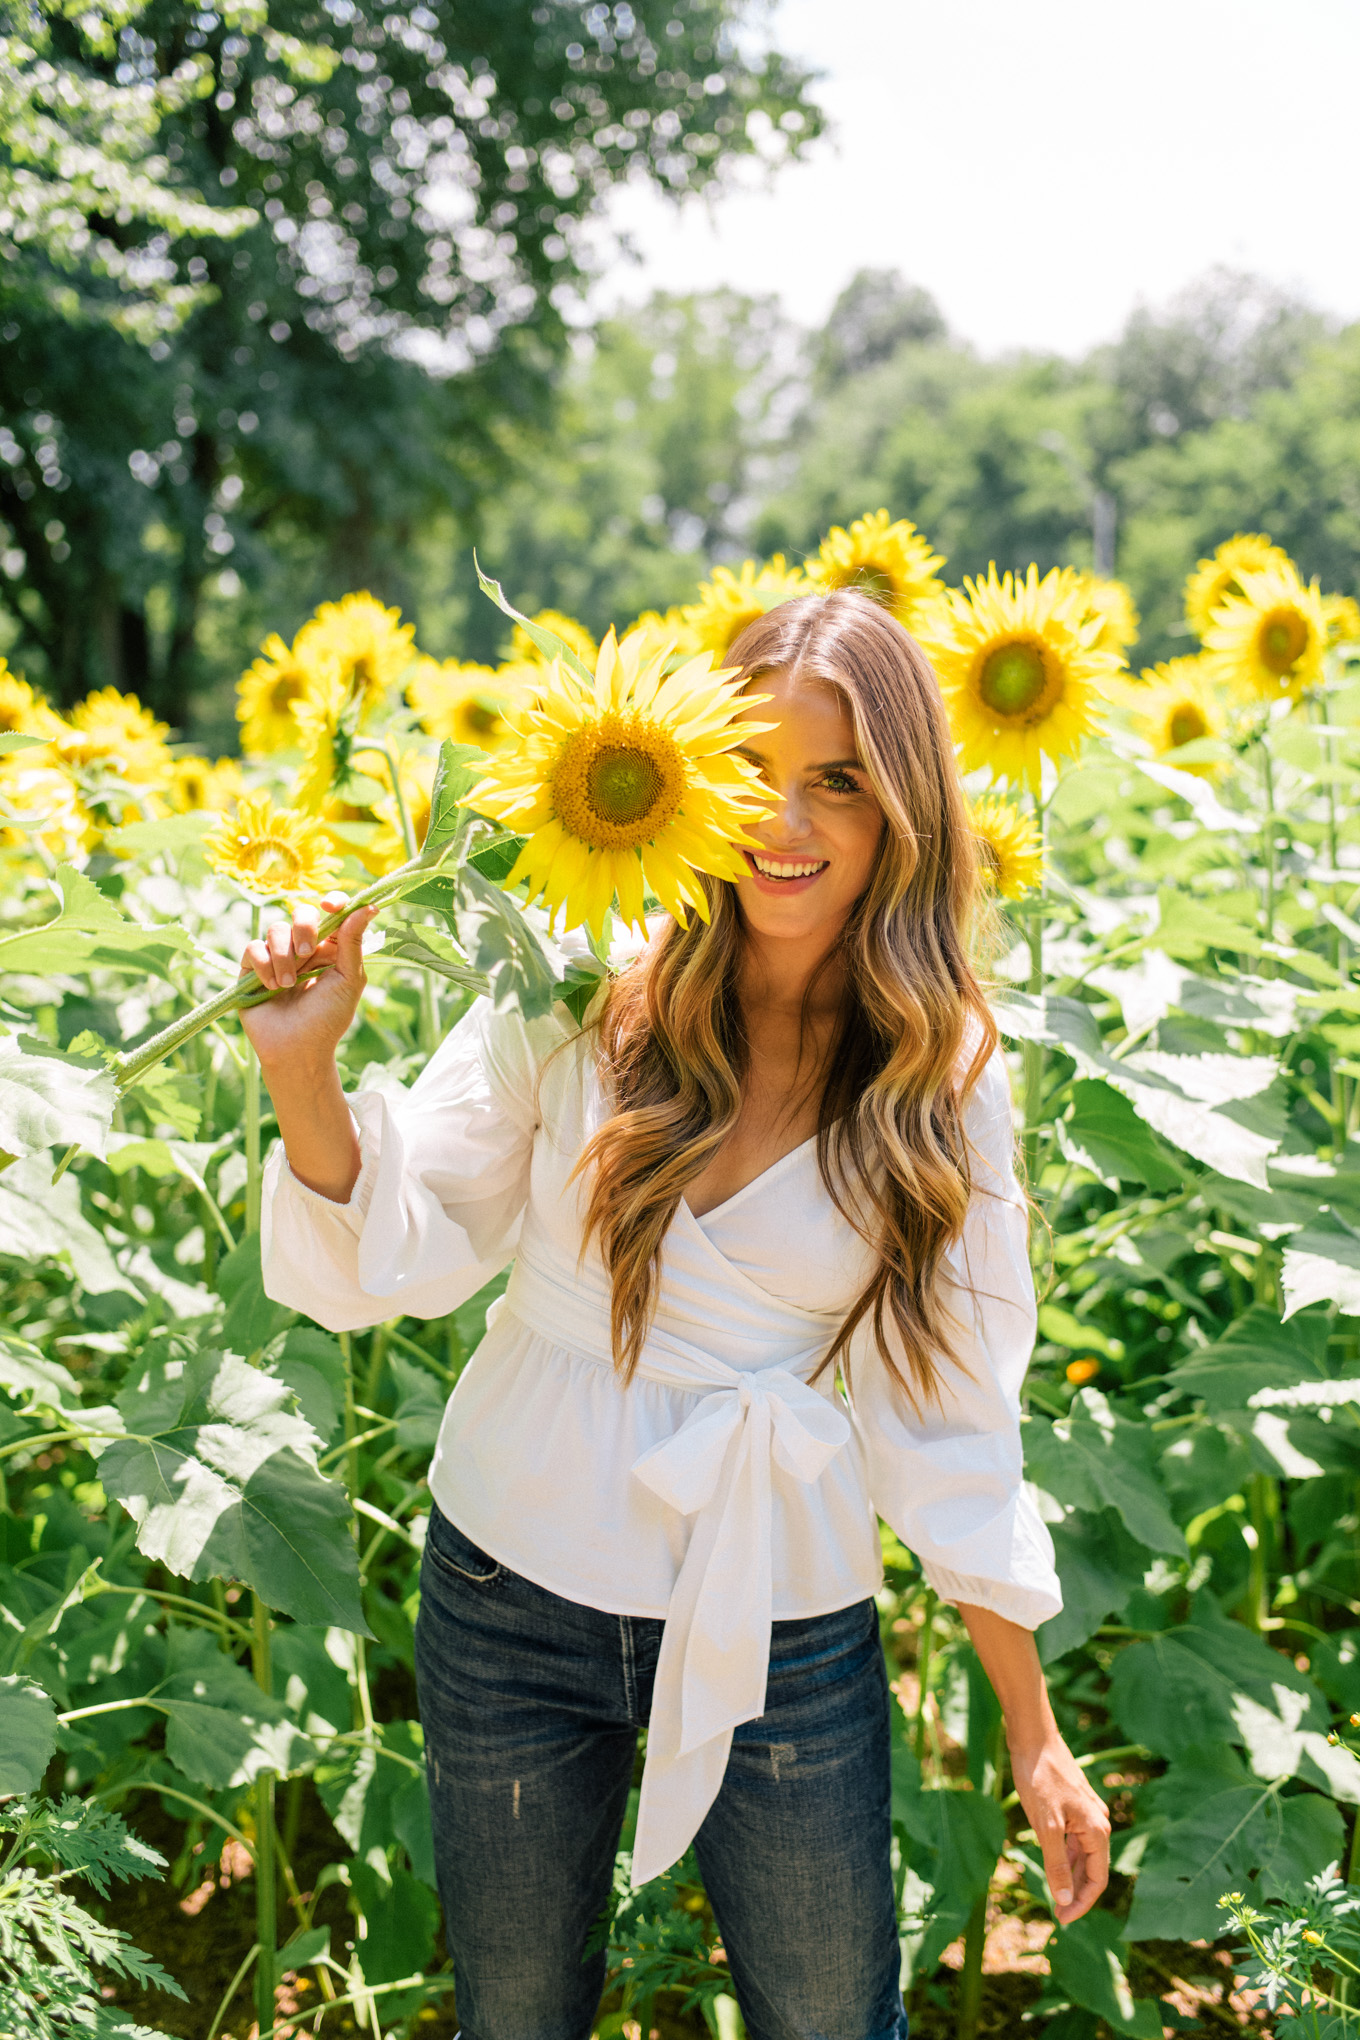 gal-meets-glam-sunflowers-asheville-1003652